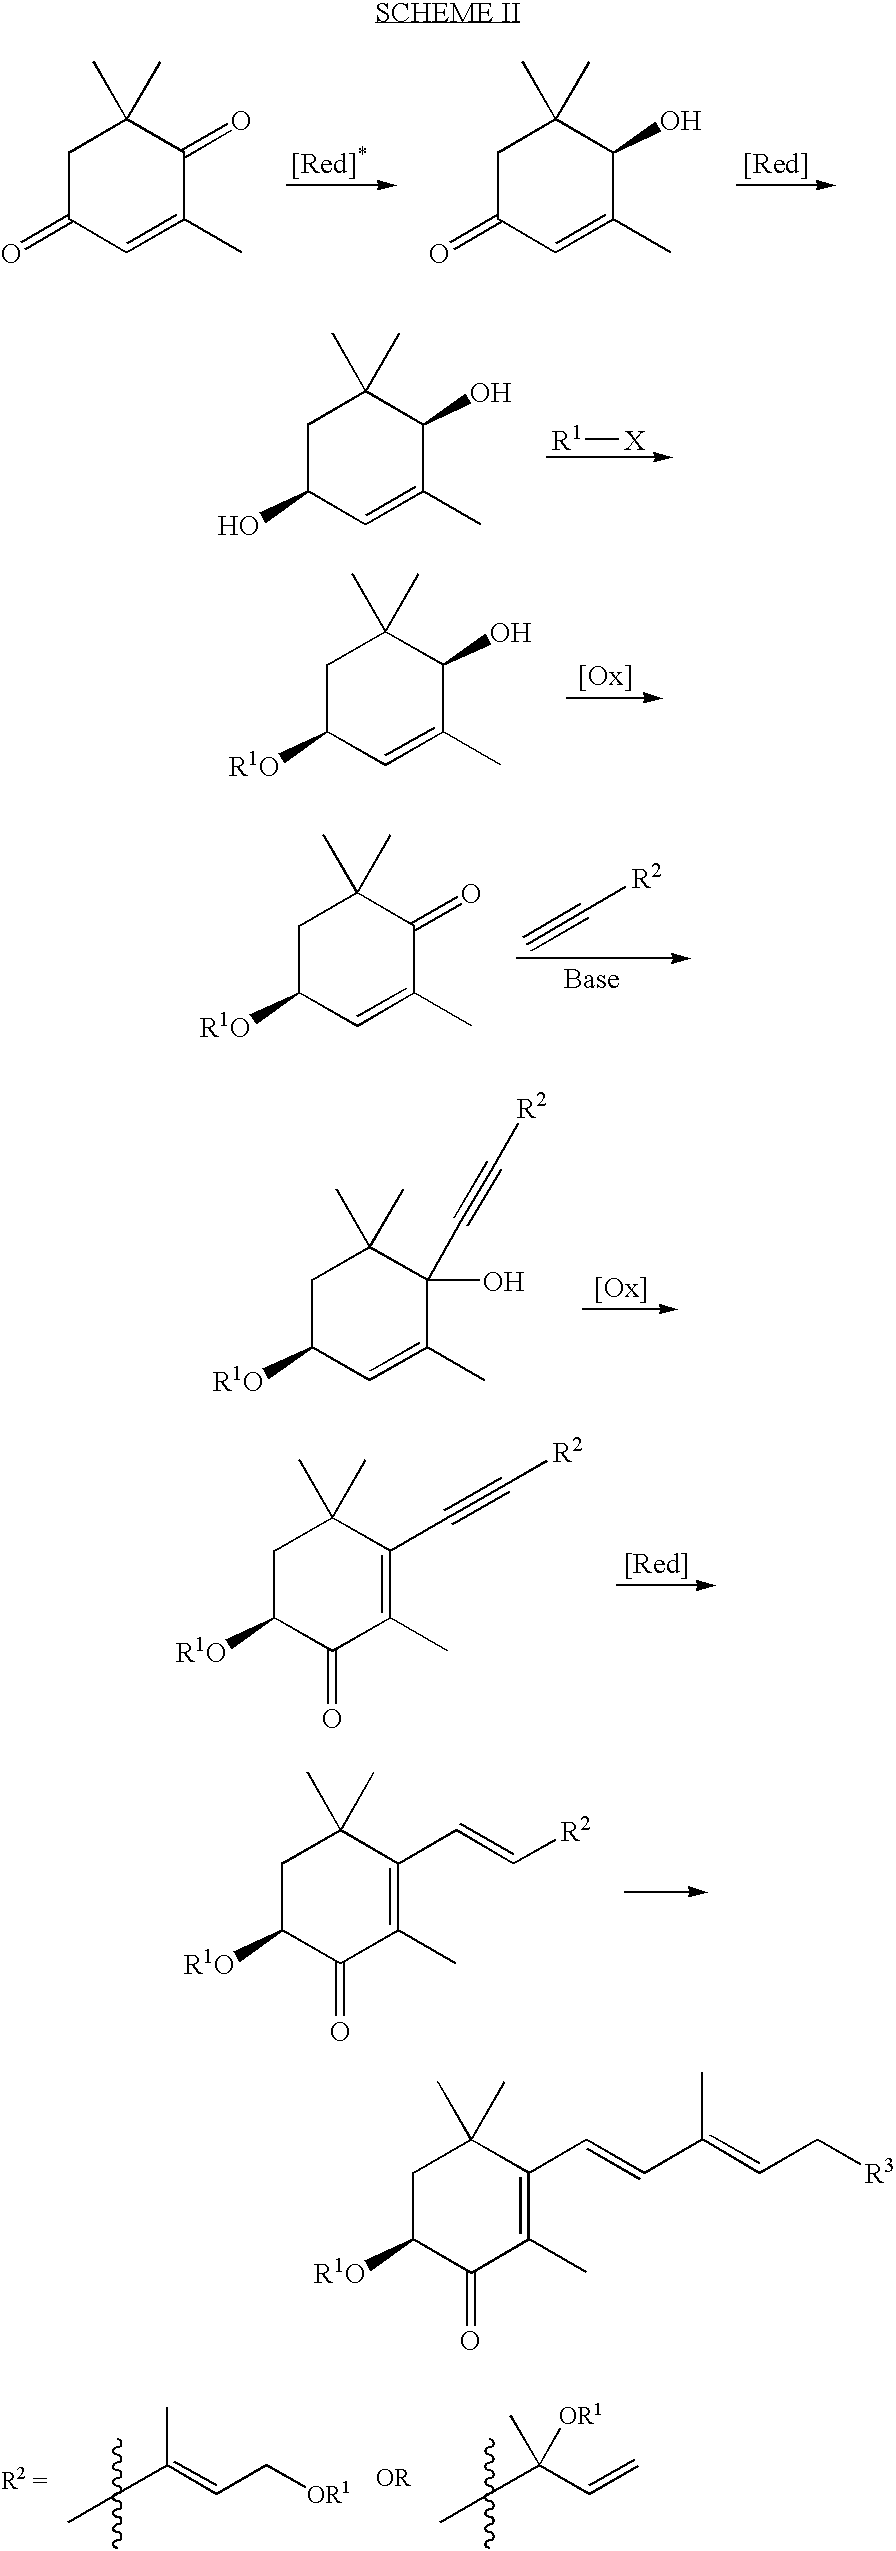 Us20060088904a1 Methods For The Synthesis Of Astaxanthin Google Vacuum Flash Ox 500 Figure 20060427 C00016